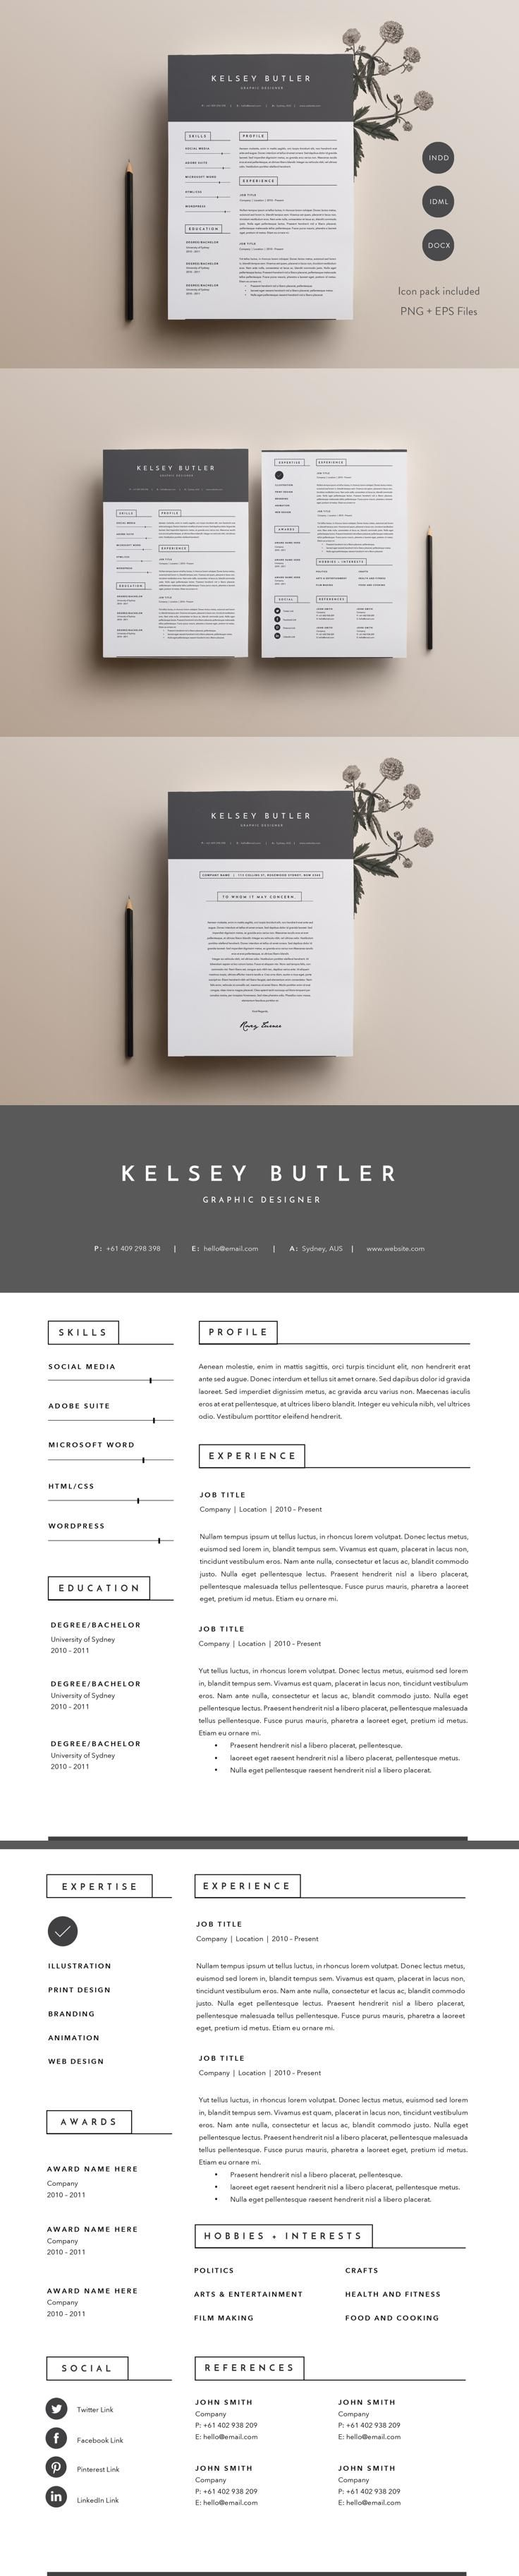 graphic design resume objective%0A  resume  design from Papernoon   DOWNLOAD  https   creativemarket com